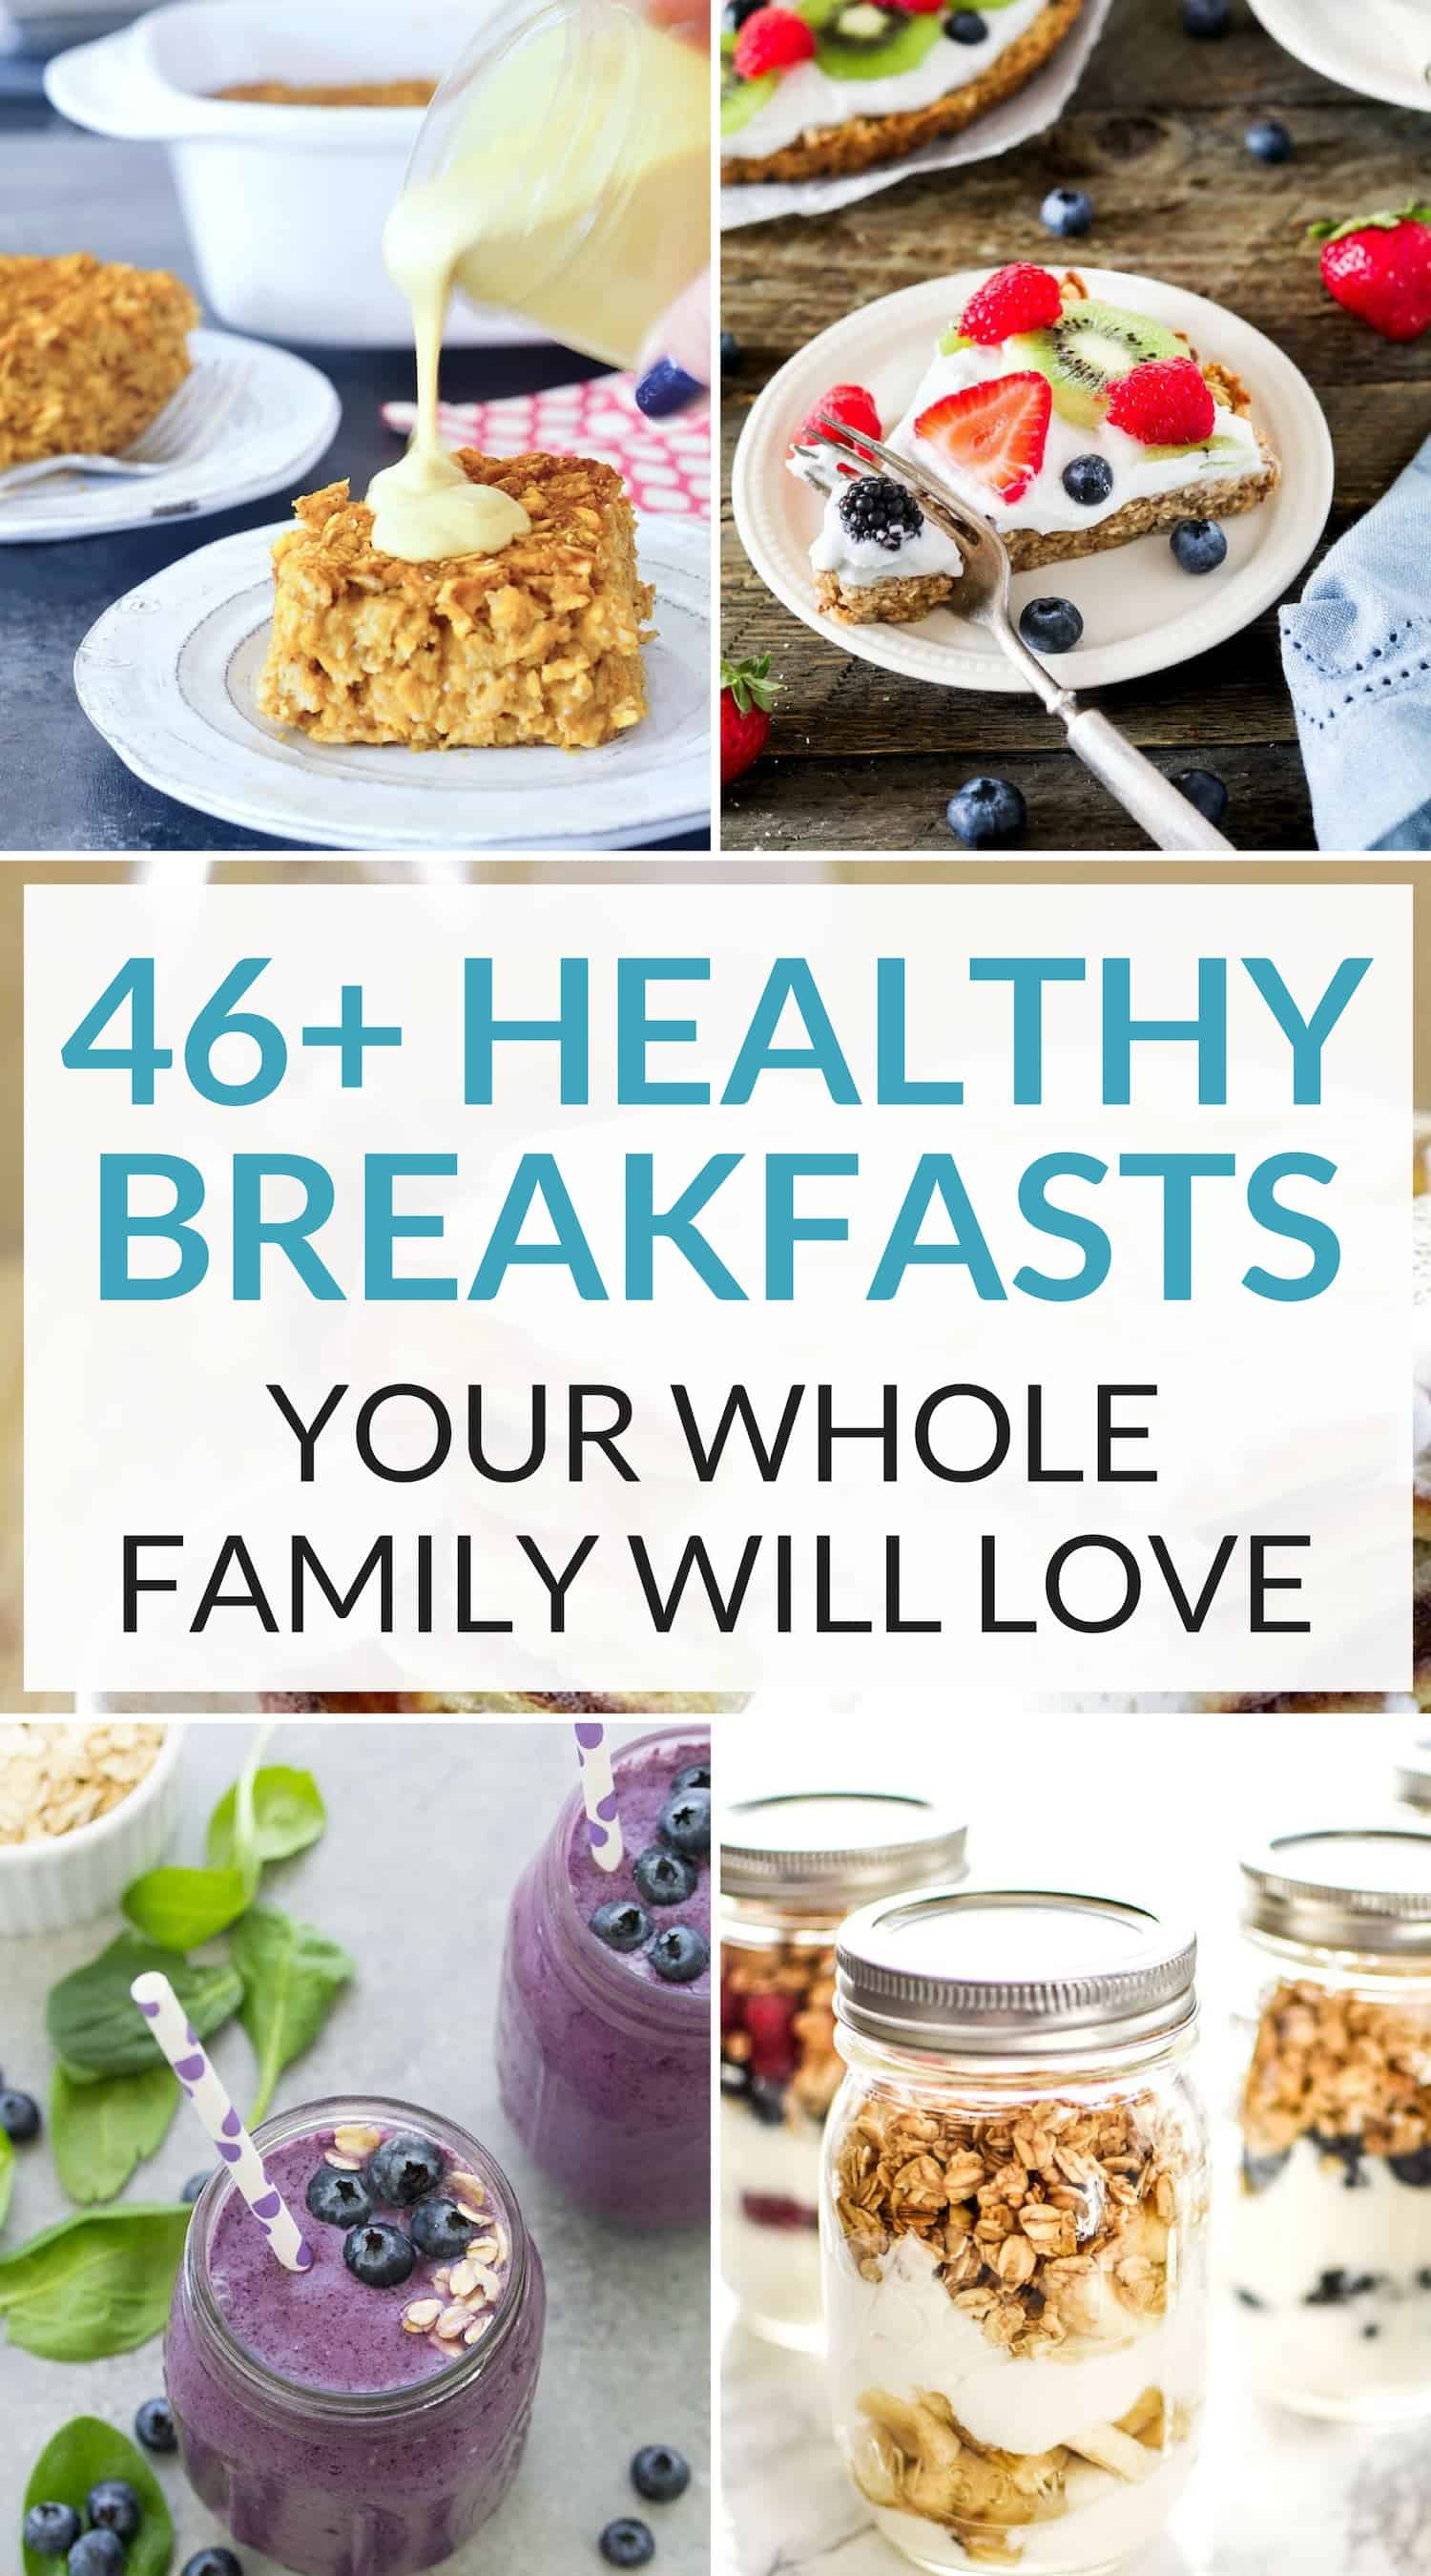 46+ healthy breakfast ideas for the whole family | healthy breakfasts recipes | healthy meal prep | healthy breakfast ideas for weight loss | healthy lunch ideas for work | lose weight while at work #healthyfood #healthyrecipes#healthyeating #healthyliving#healthymeals #mealplanning#mealideas #lunchideas